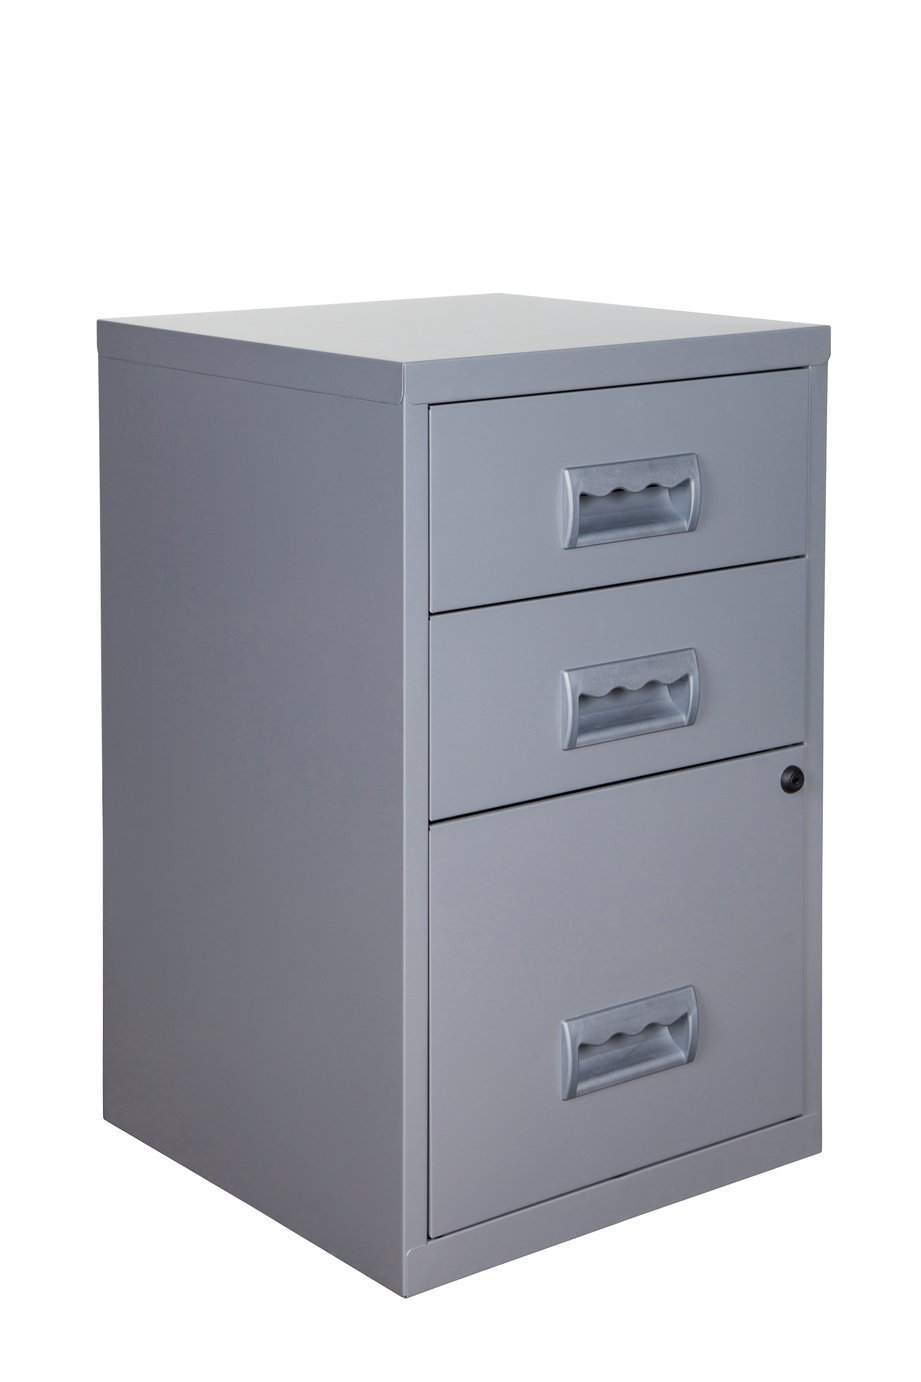 Pierre Henry A4 3 Drawer Combi Filing Cabinet - Silver